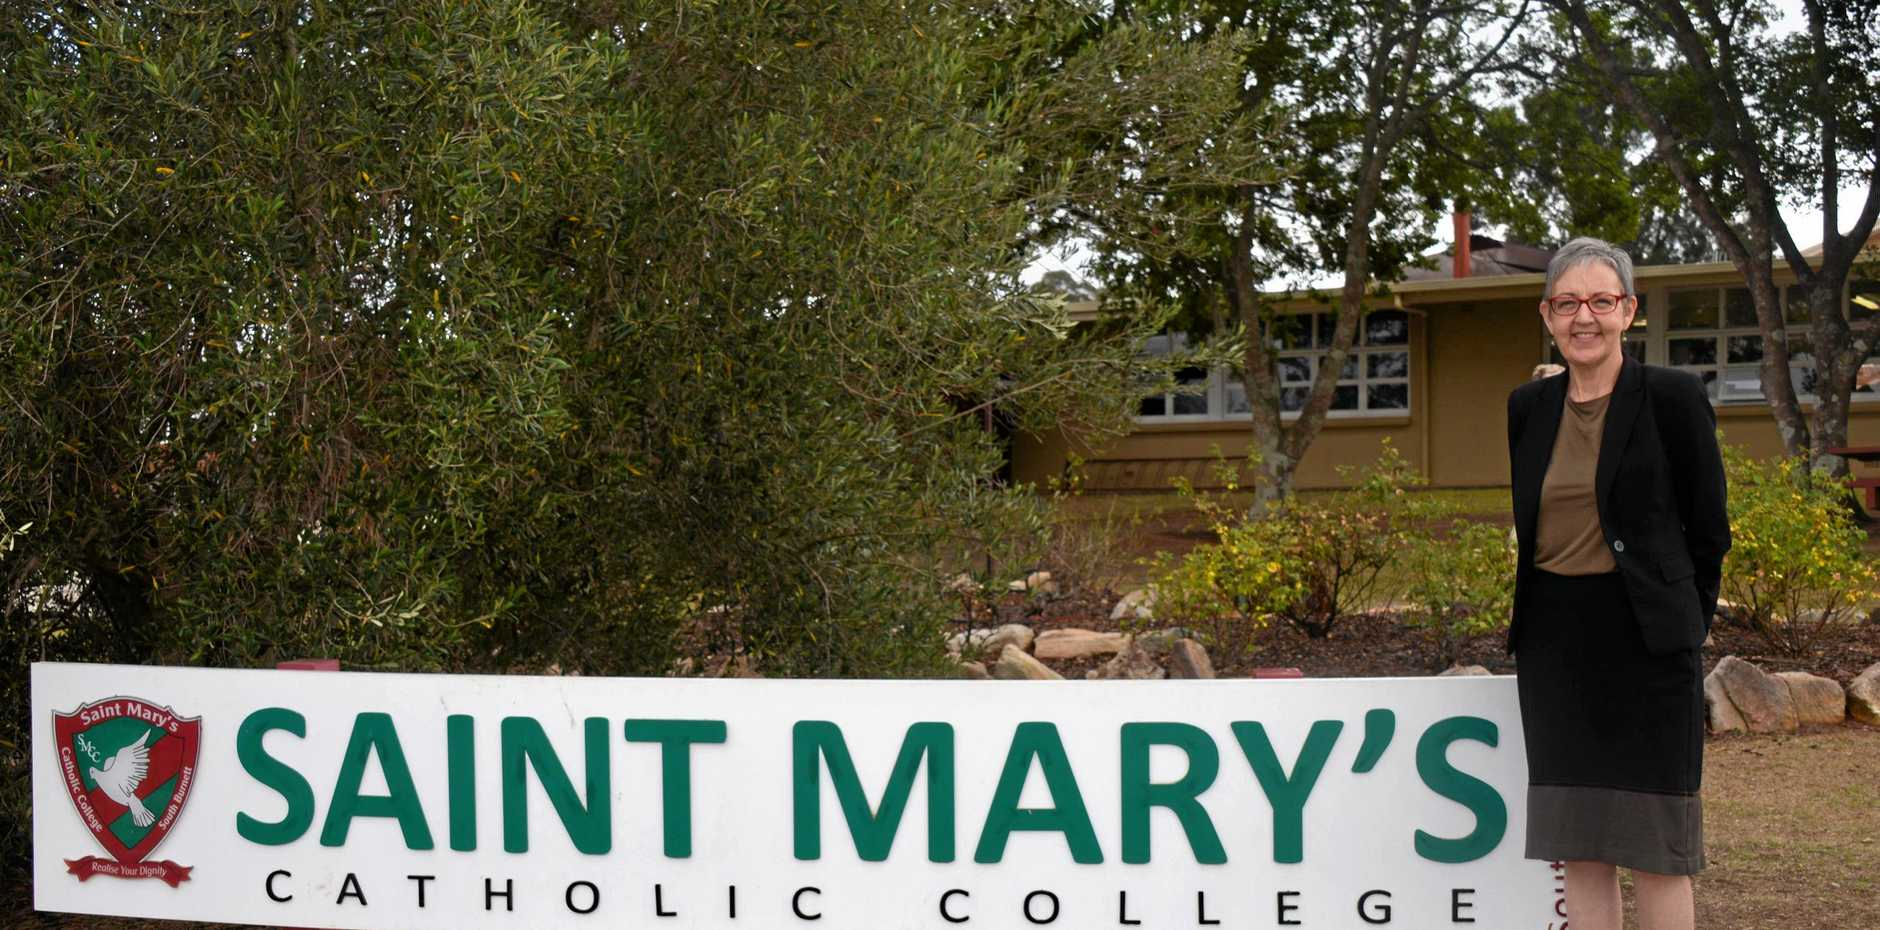 Saint Mary's Catholic College principal of four years, Angela Myles, will be moving on at the end of the year.